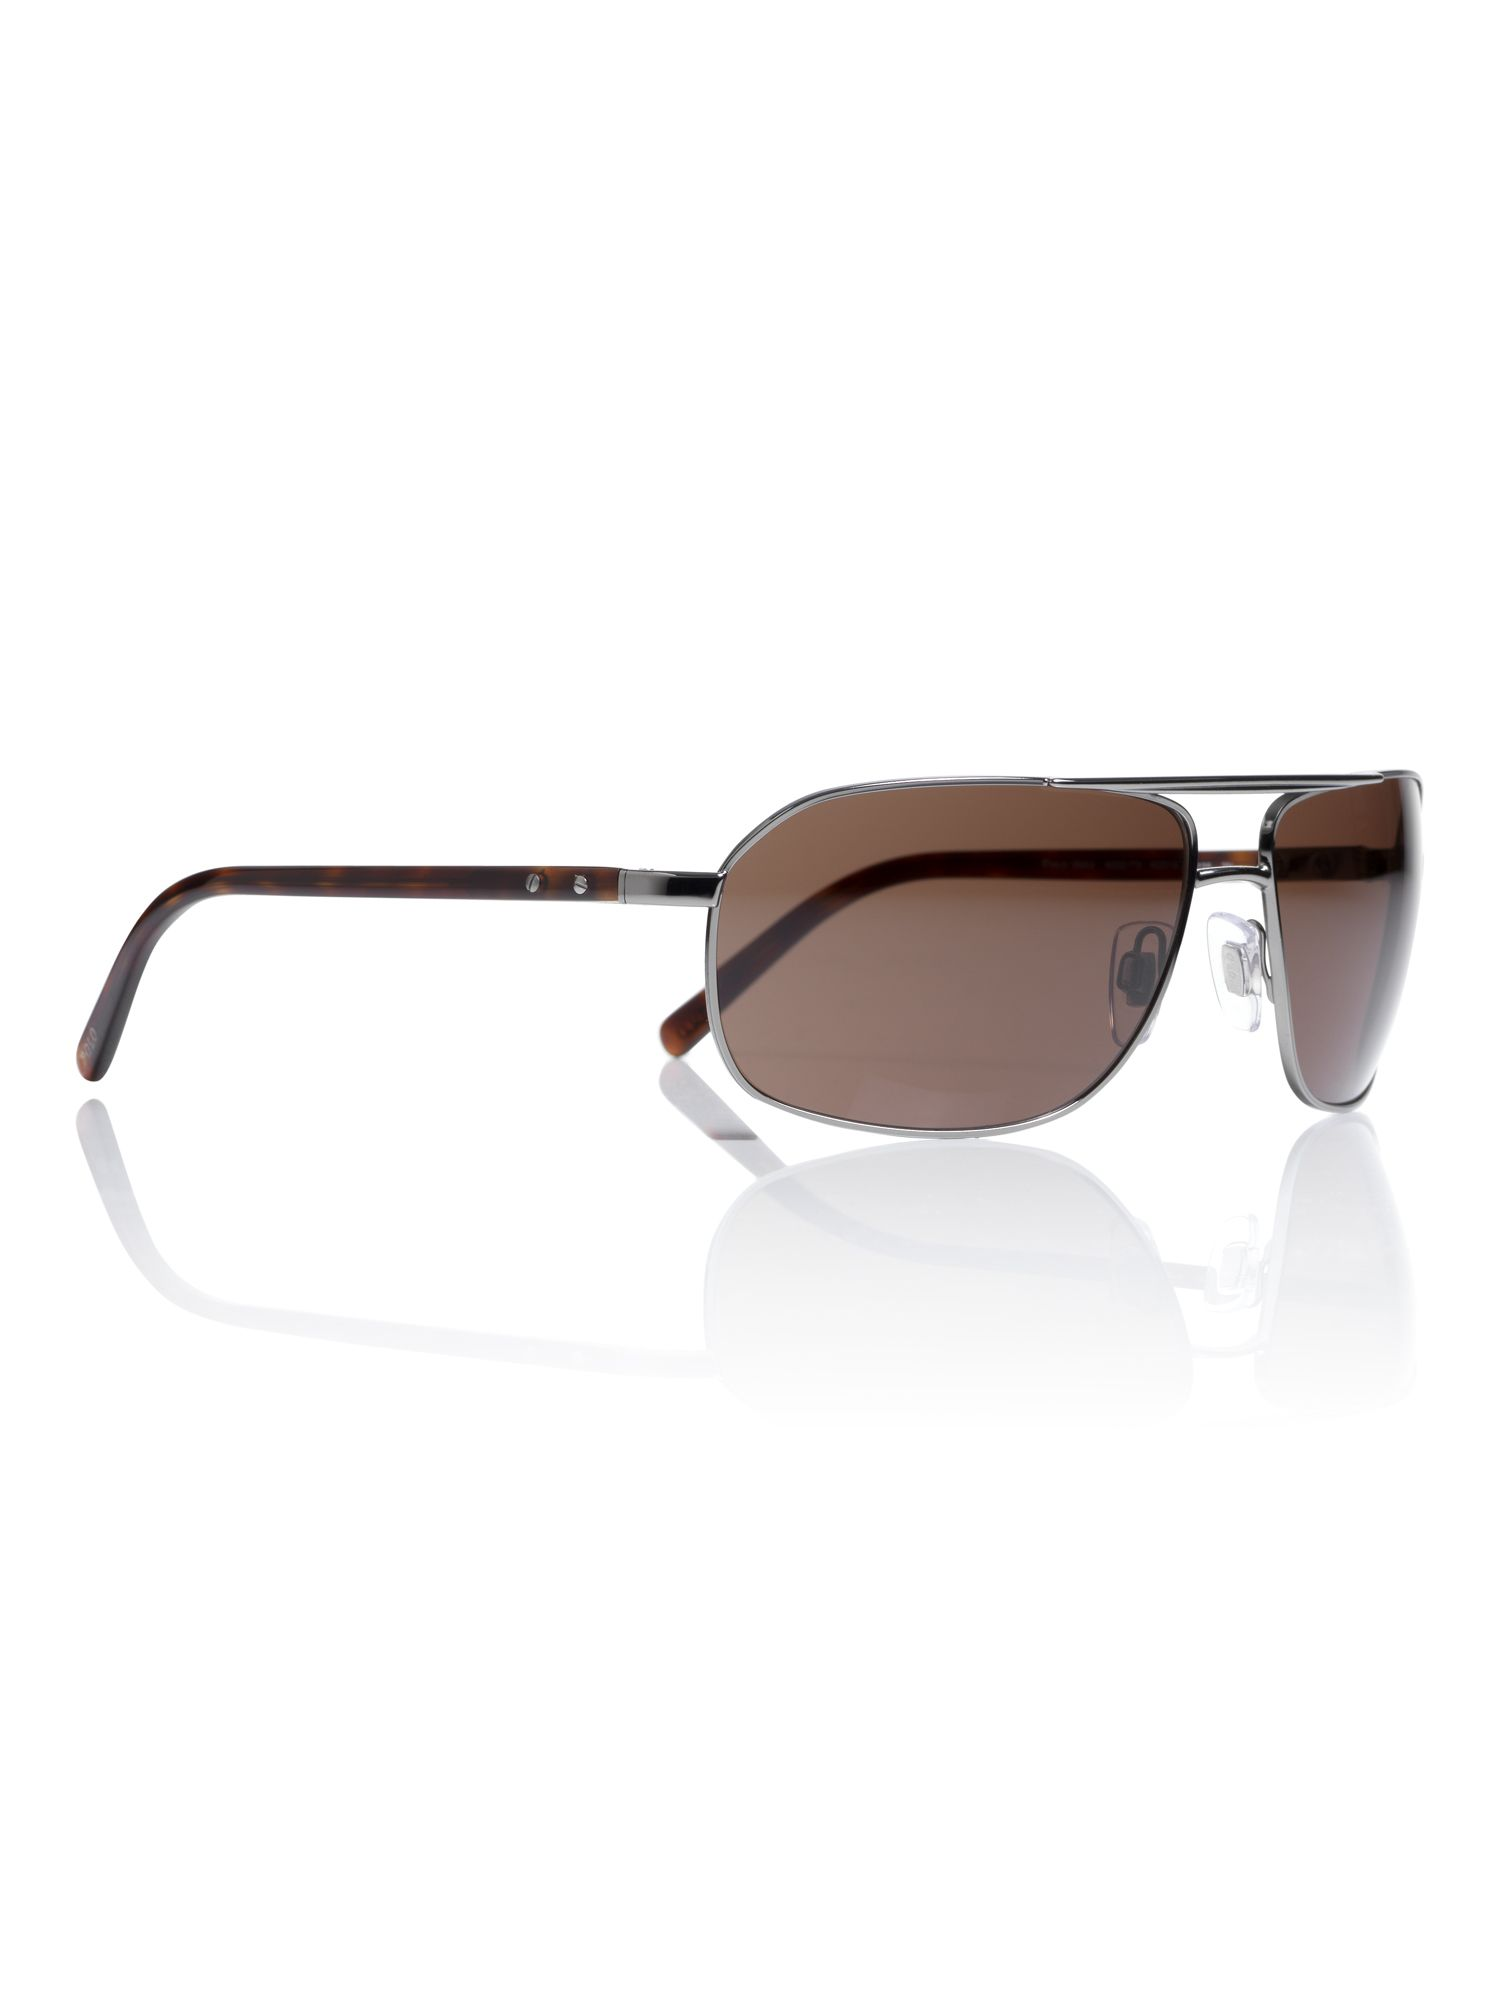 Ralph Lauren Sunglasses Mens  polo ralph lauren mens rectangular sunglasses in gray for men lyst